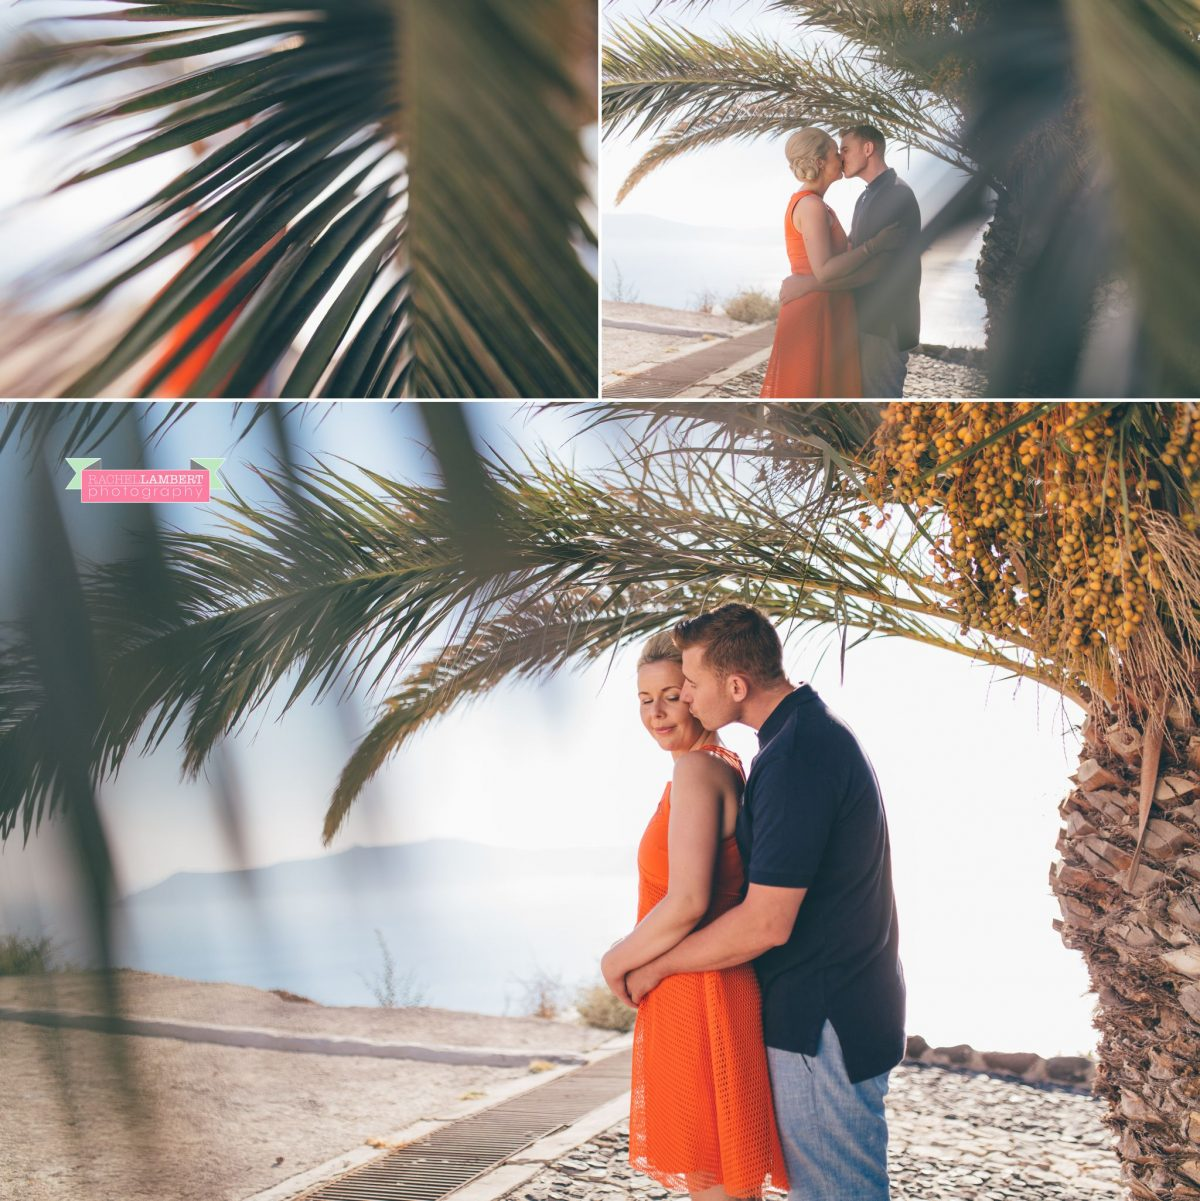 rachel_lambert_photography_santorini_greece_pre-wedding_shoot_engagement_rach_matt_ 6